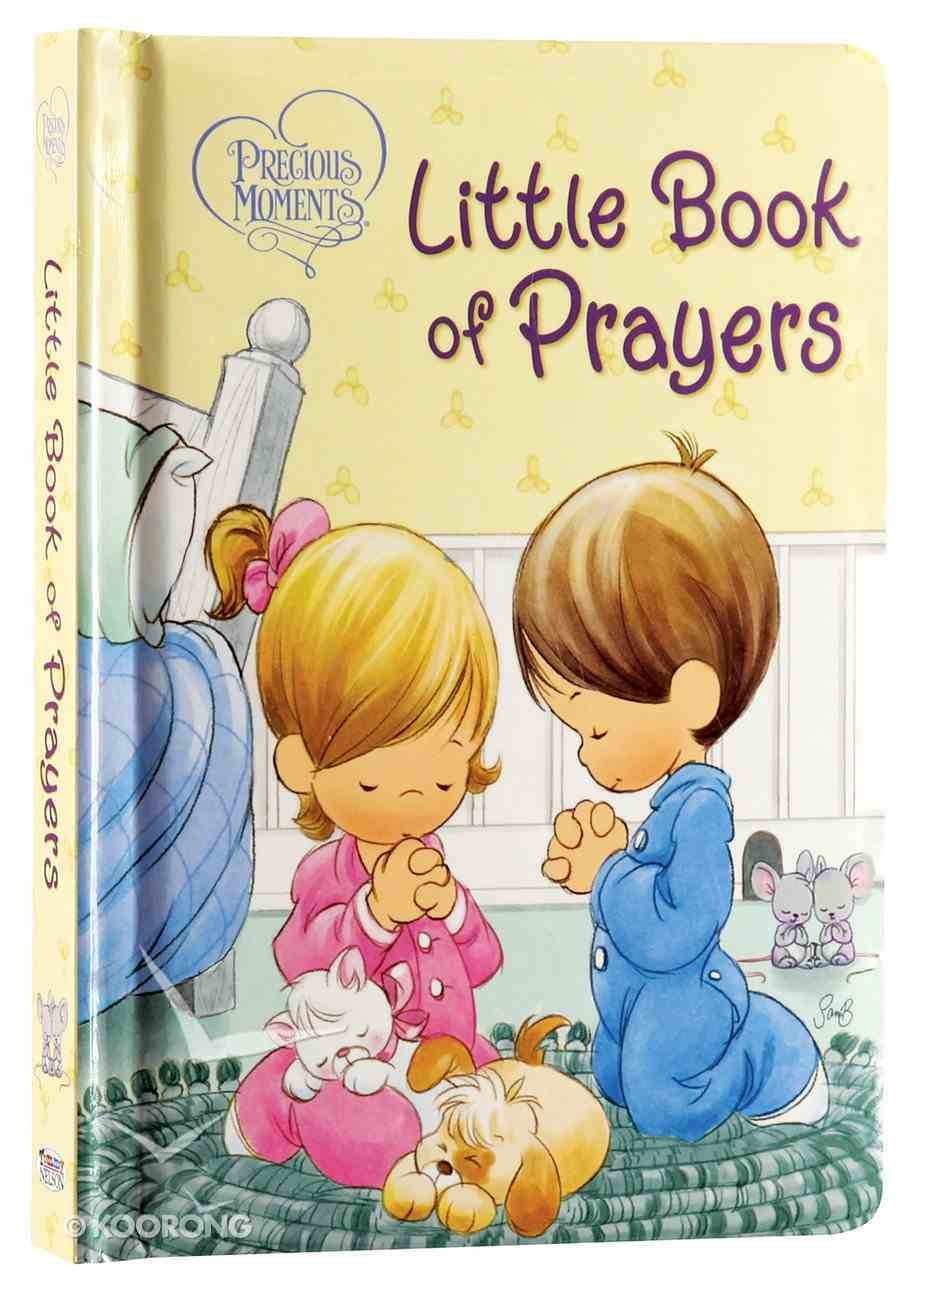 Little Book of Prayers (Precious Moments Series) Board Book